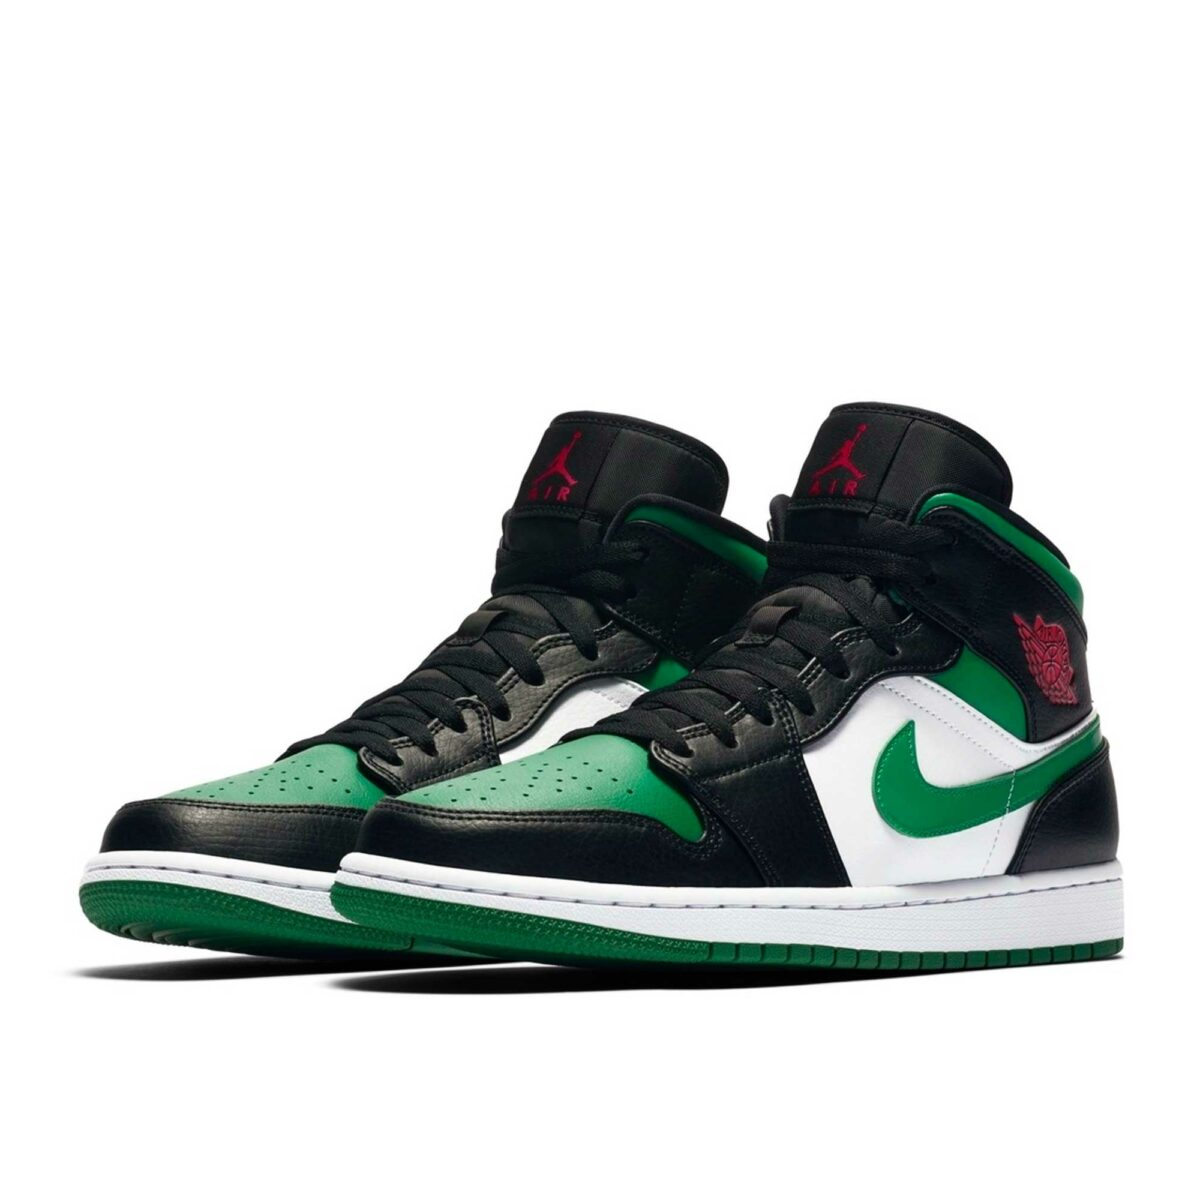 nike air Jordan 1 mid pine green black 554724_067 купить